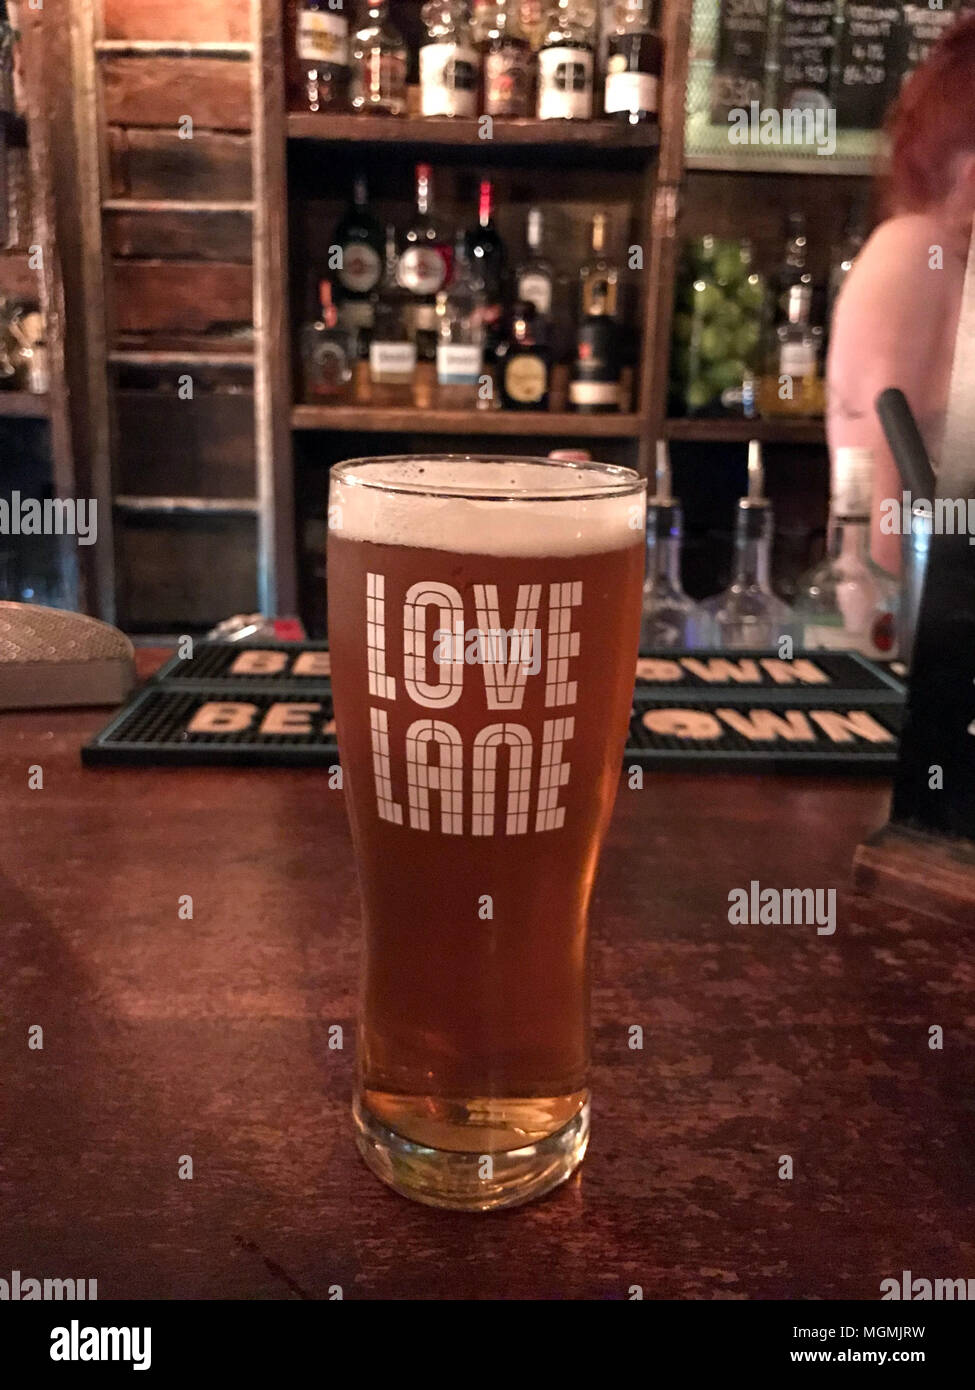 Love Lane Brewery Pint Pot Glass, on a bar - Stock Image